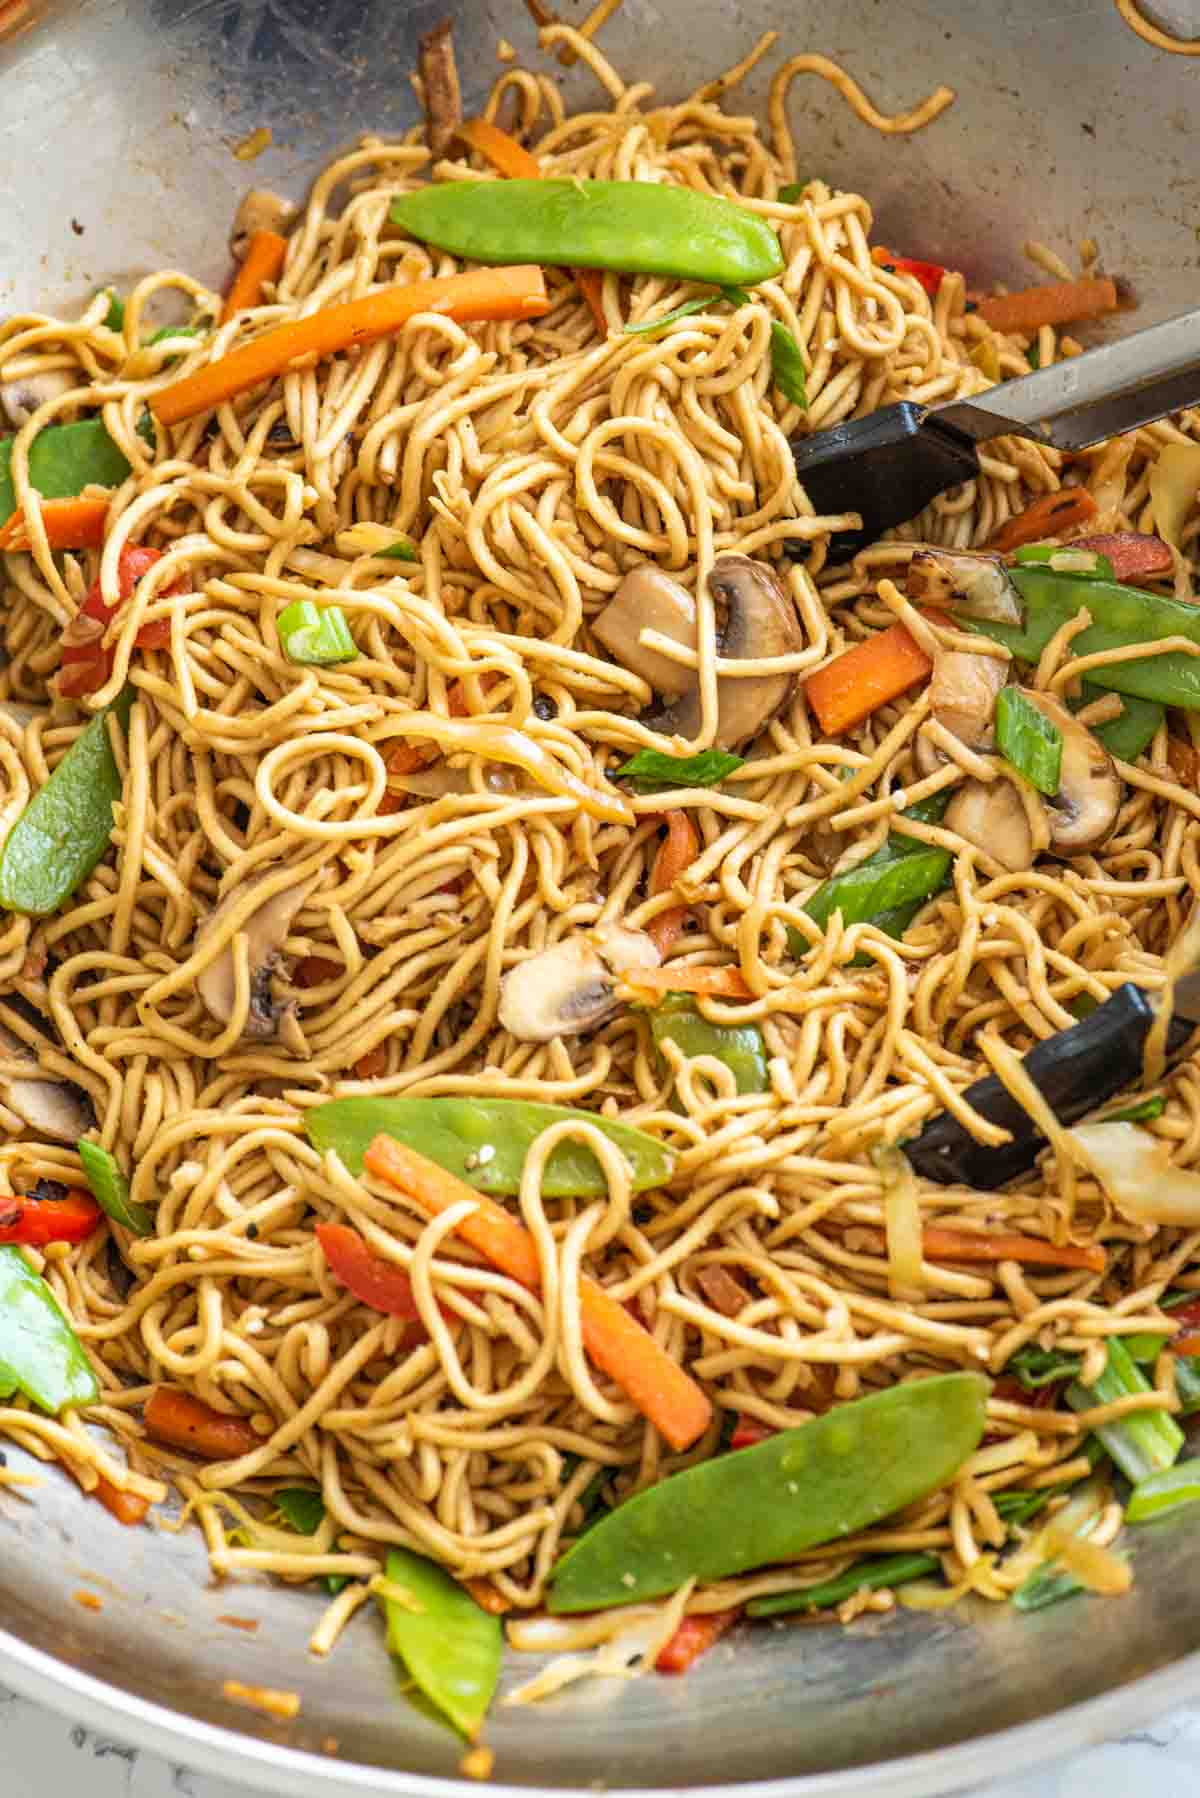 Stir-fried noodles are tossed together in a wok with a pair of tongs